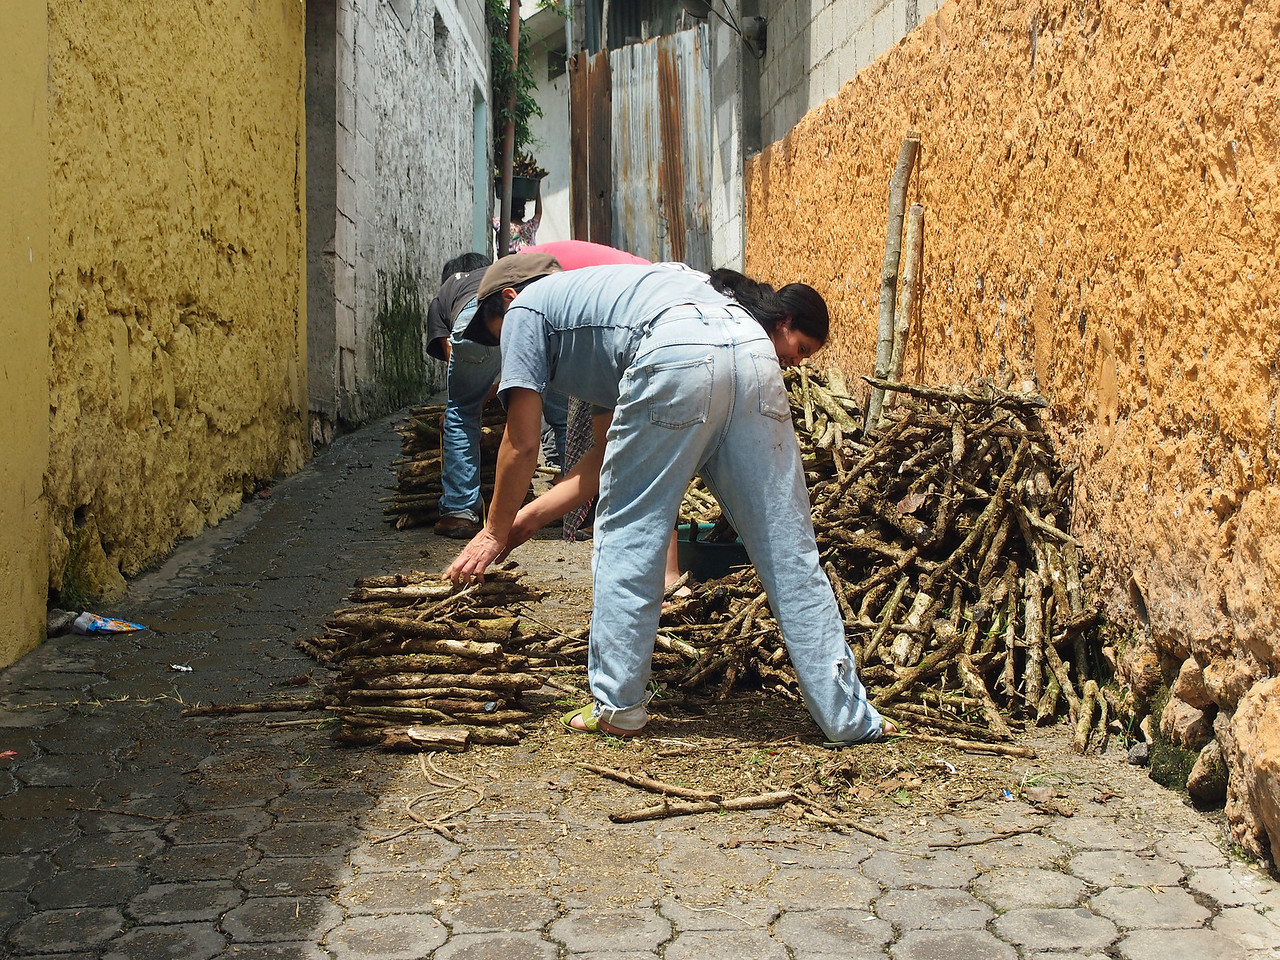 People sorting firewood for sale - Cooking and heating seem to be solely from wood or charcoal